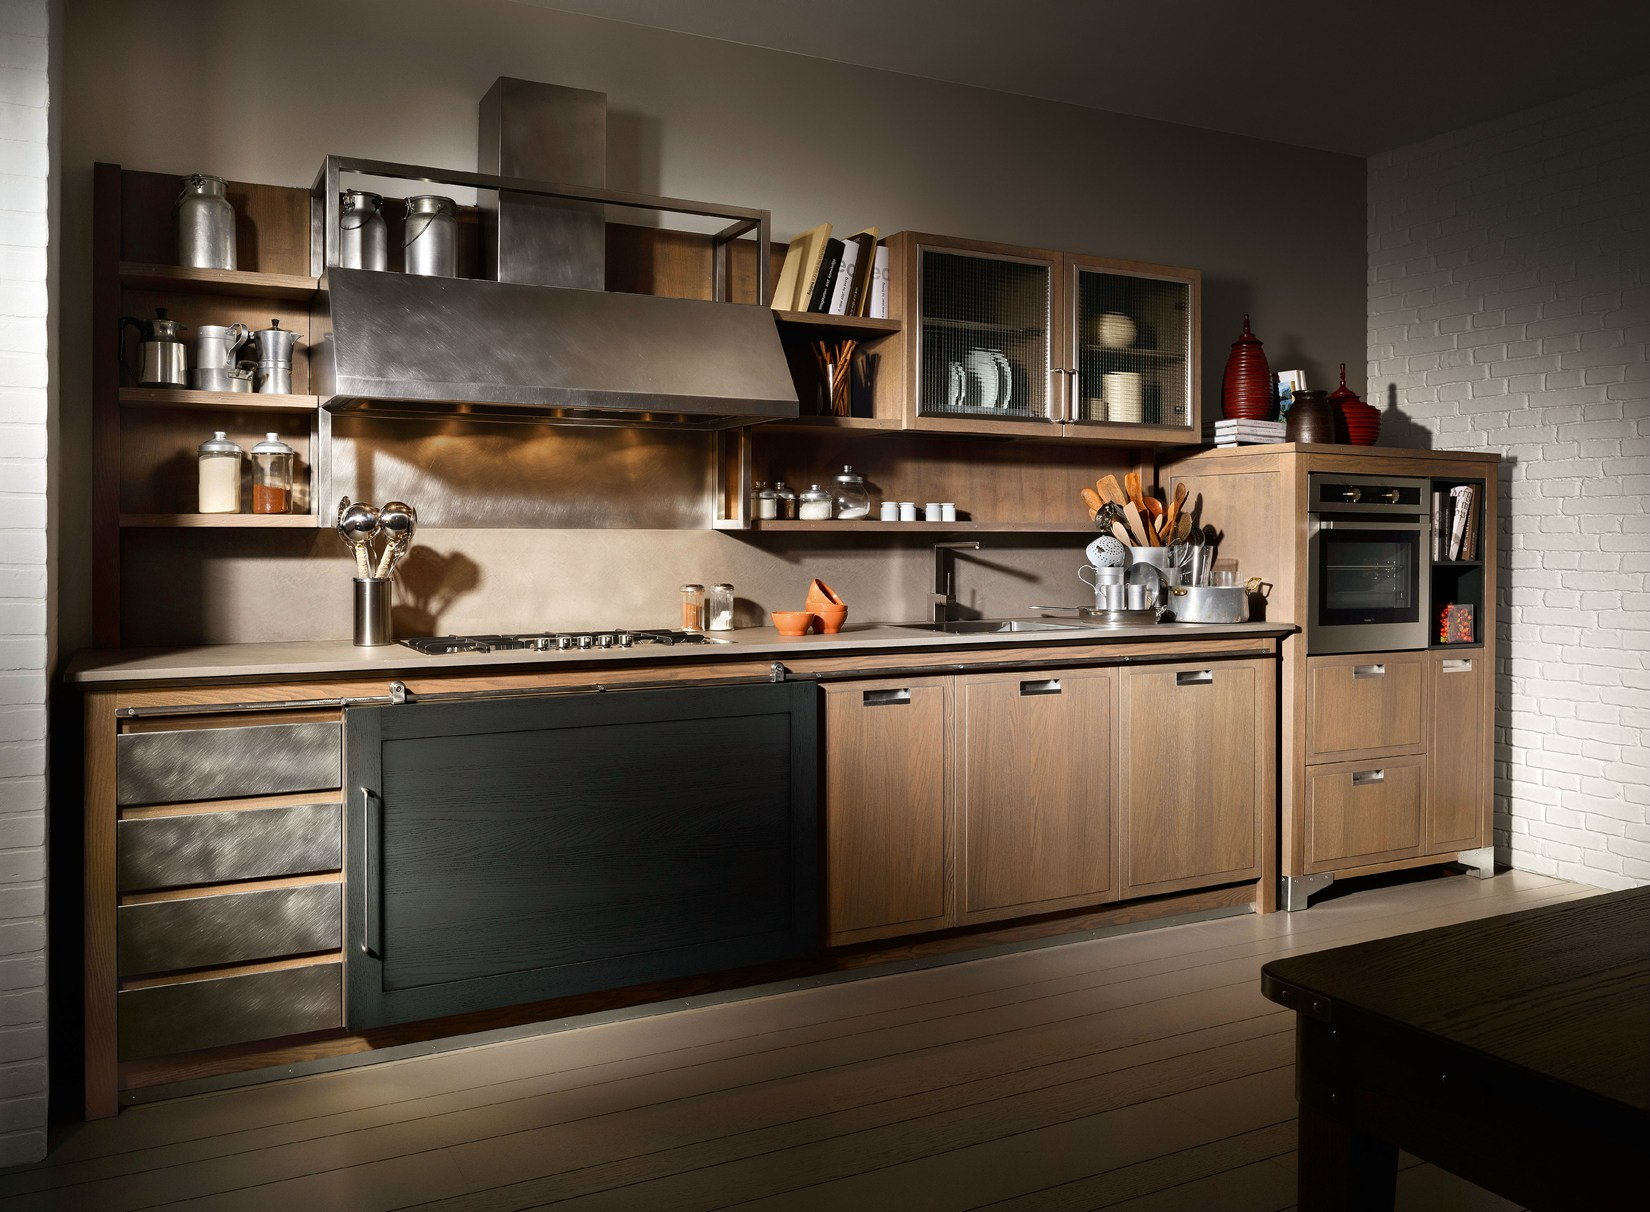 Beautiful Home Cucine Opinioni Pictures - Skilifts.us - skilifts.us